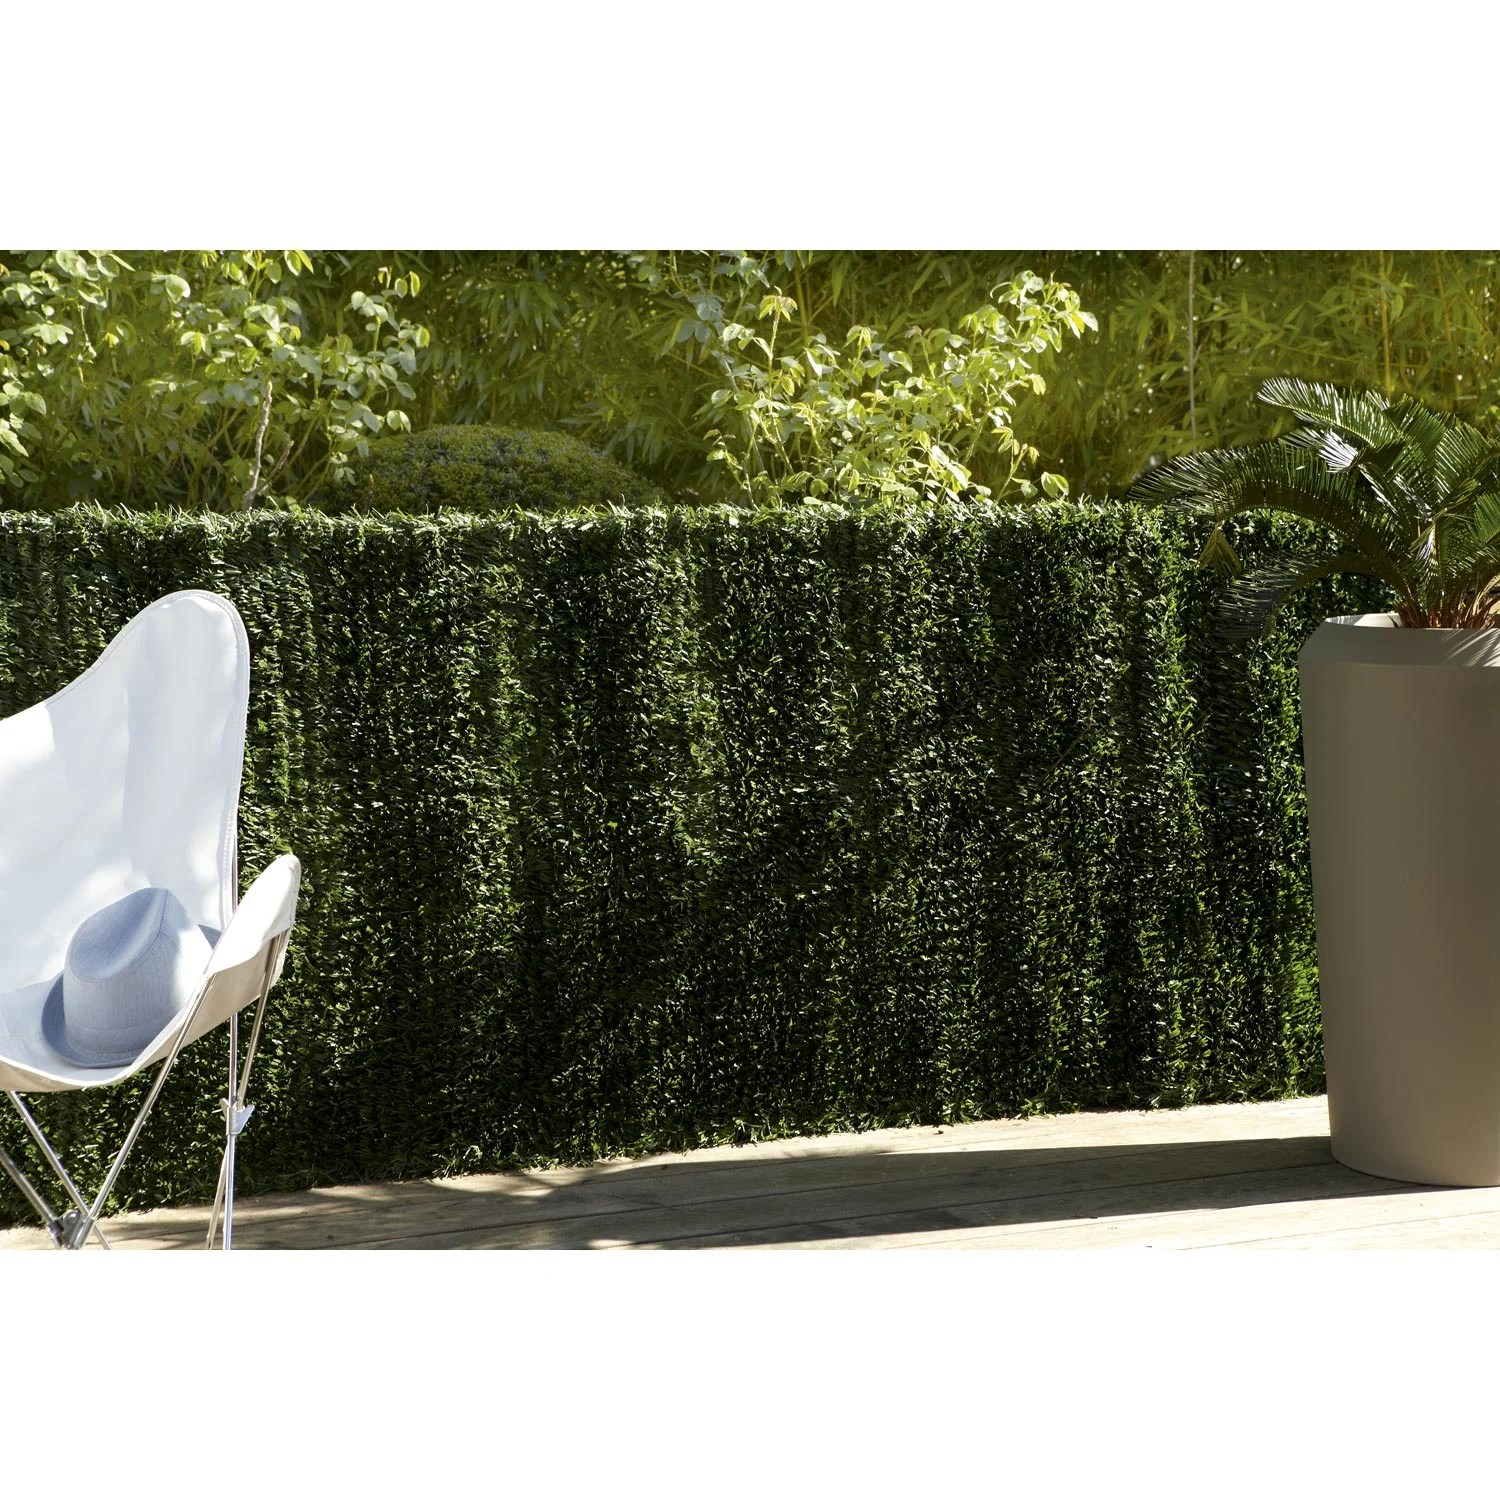 Isolation Phonique Terrasse Haie Artificielle Sans Attache Naterial H 150 X L 300 Cm